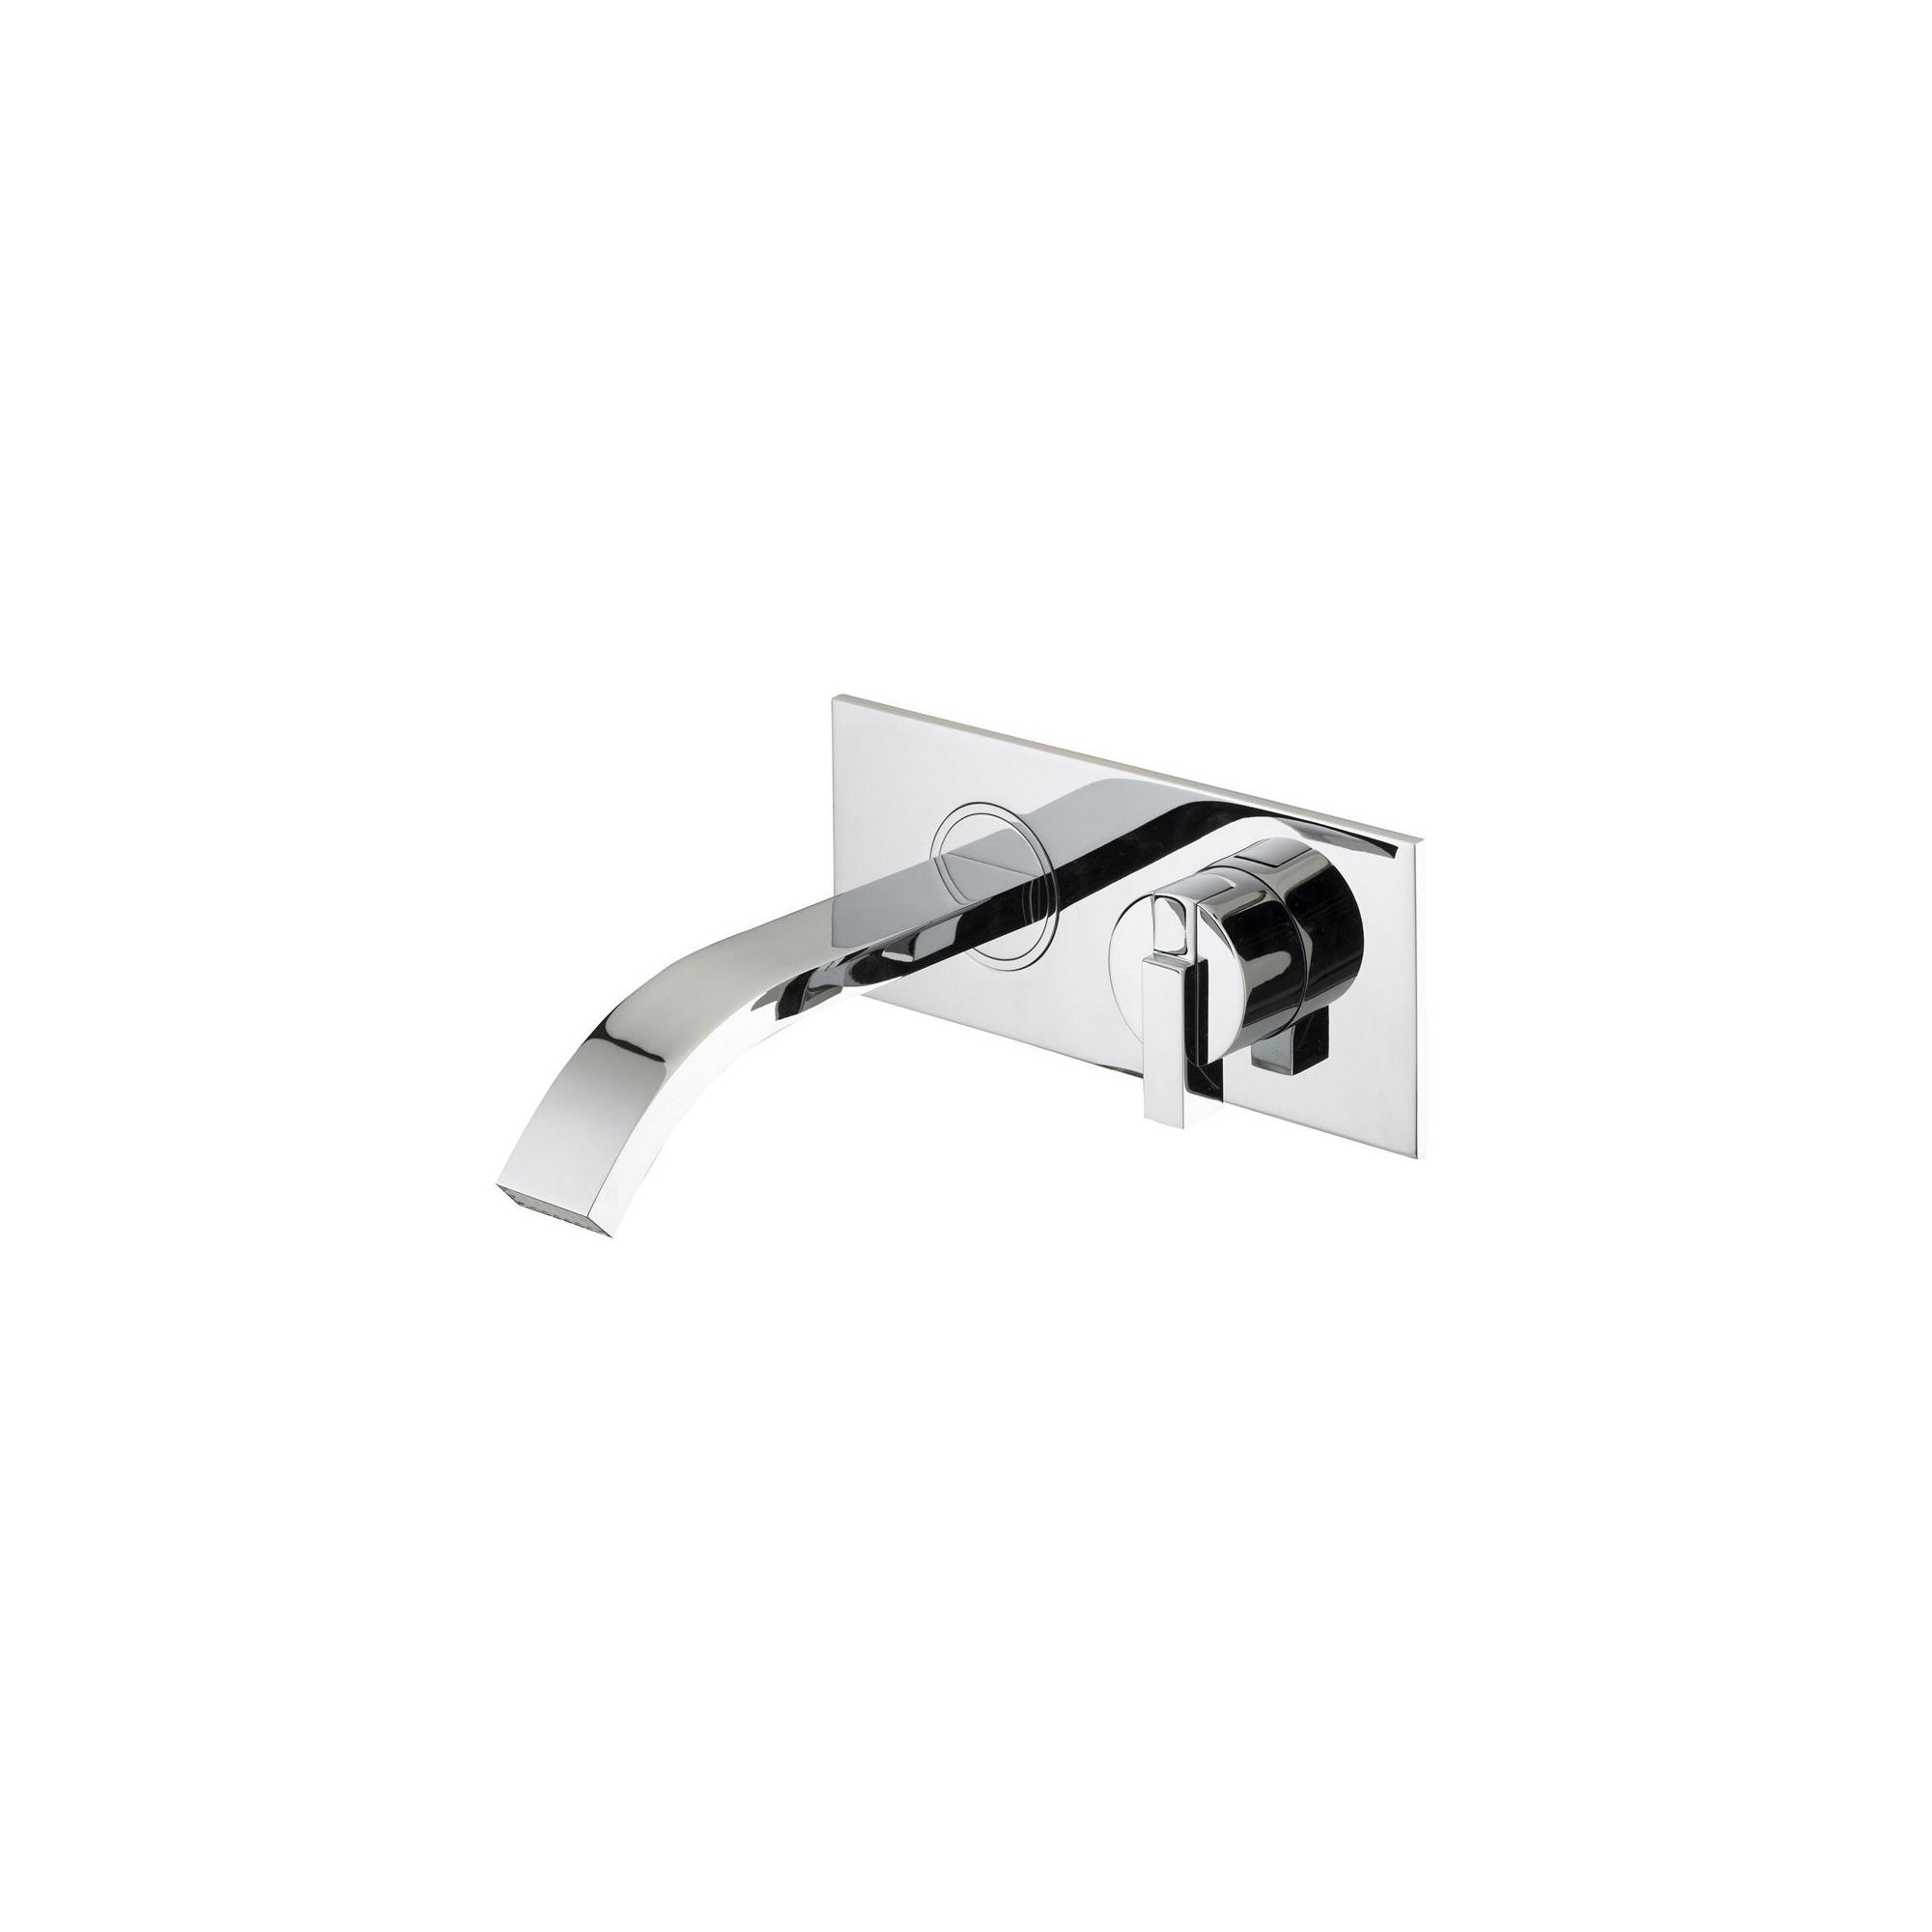 Bristan Chill Wall Mounted Bath Filler Tap Chrome Plated at Tesco Direct